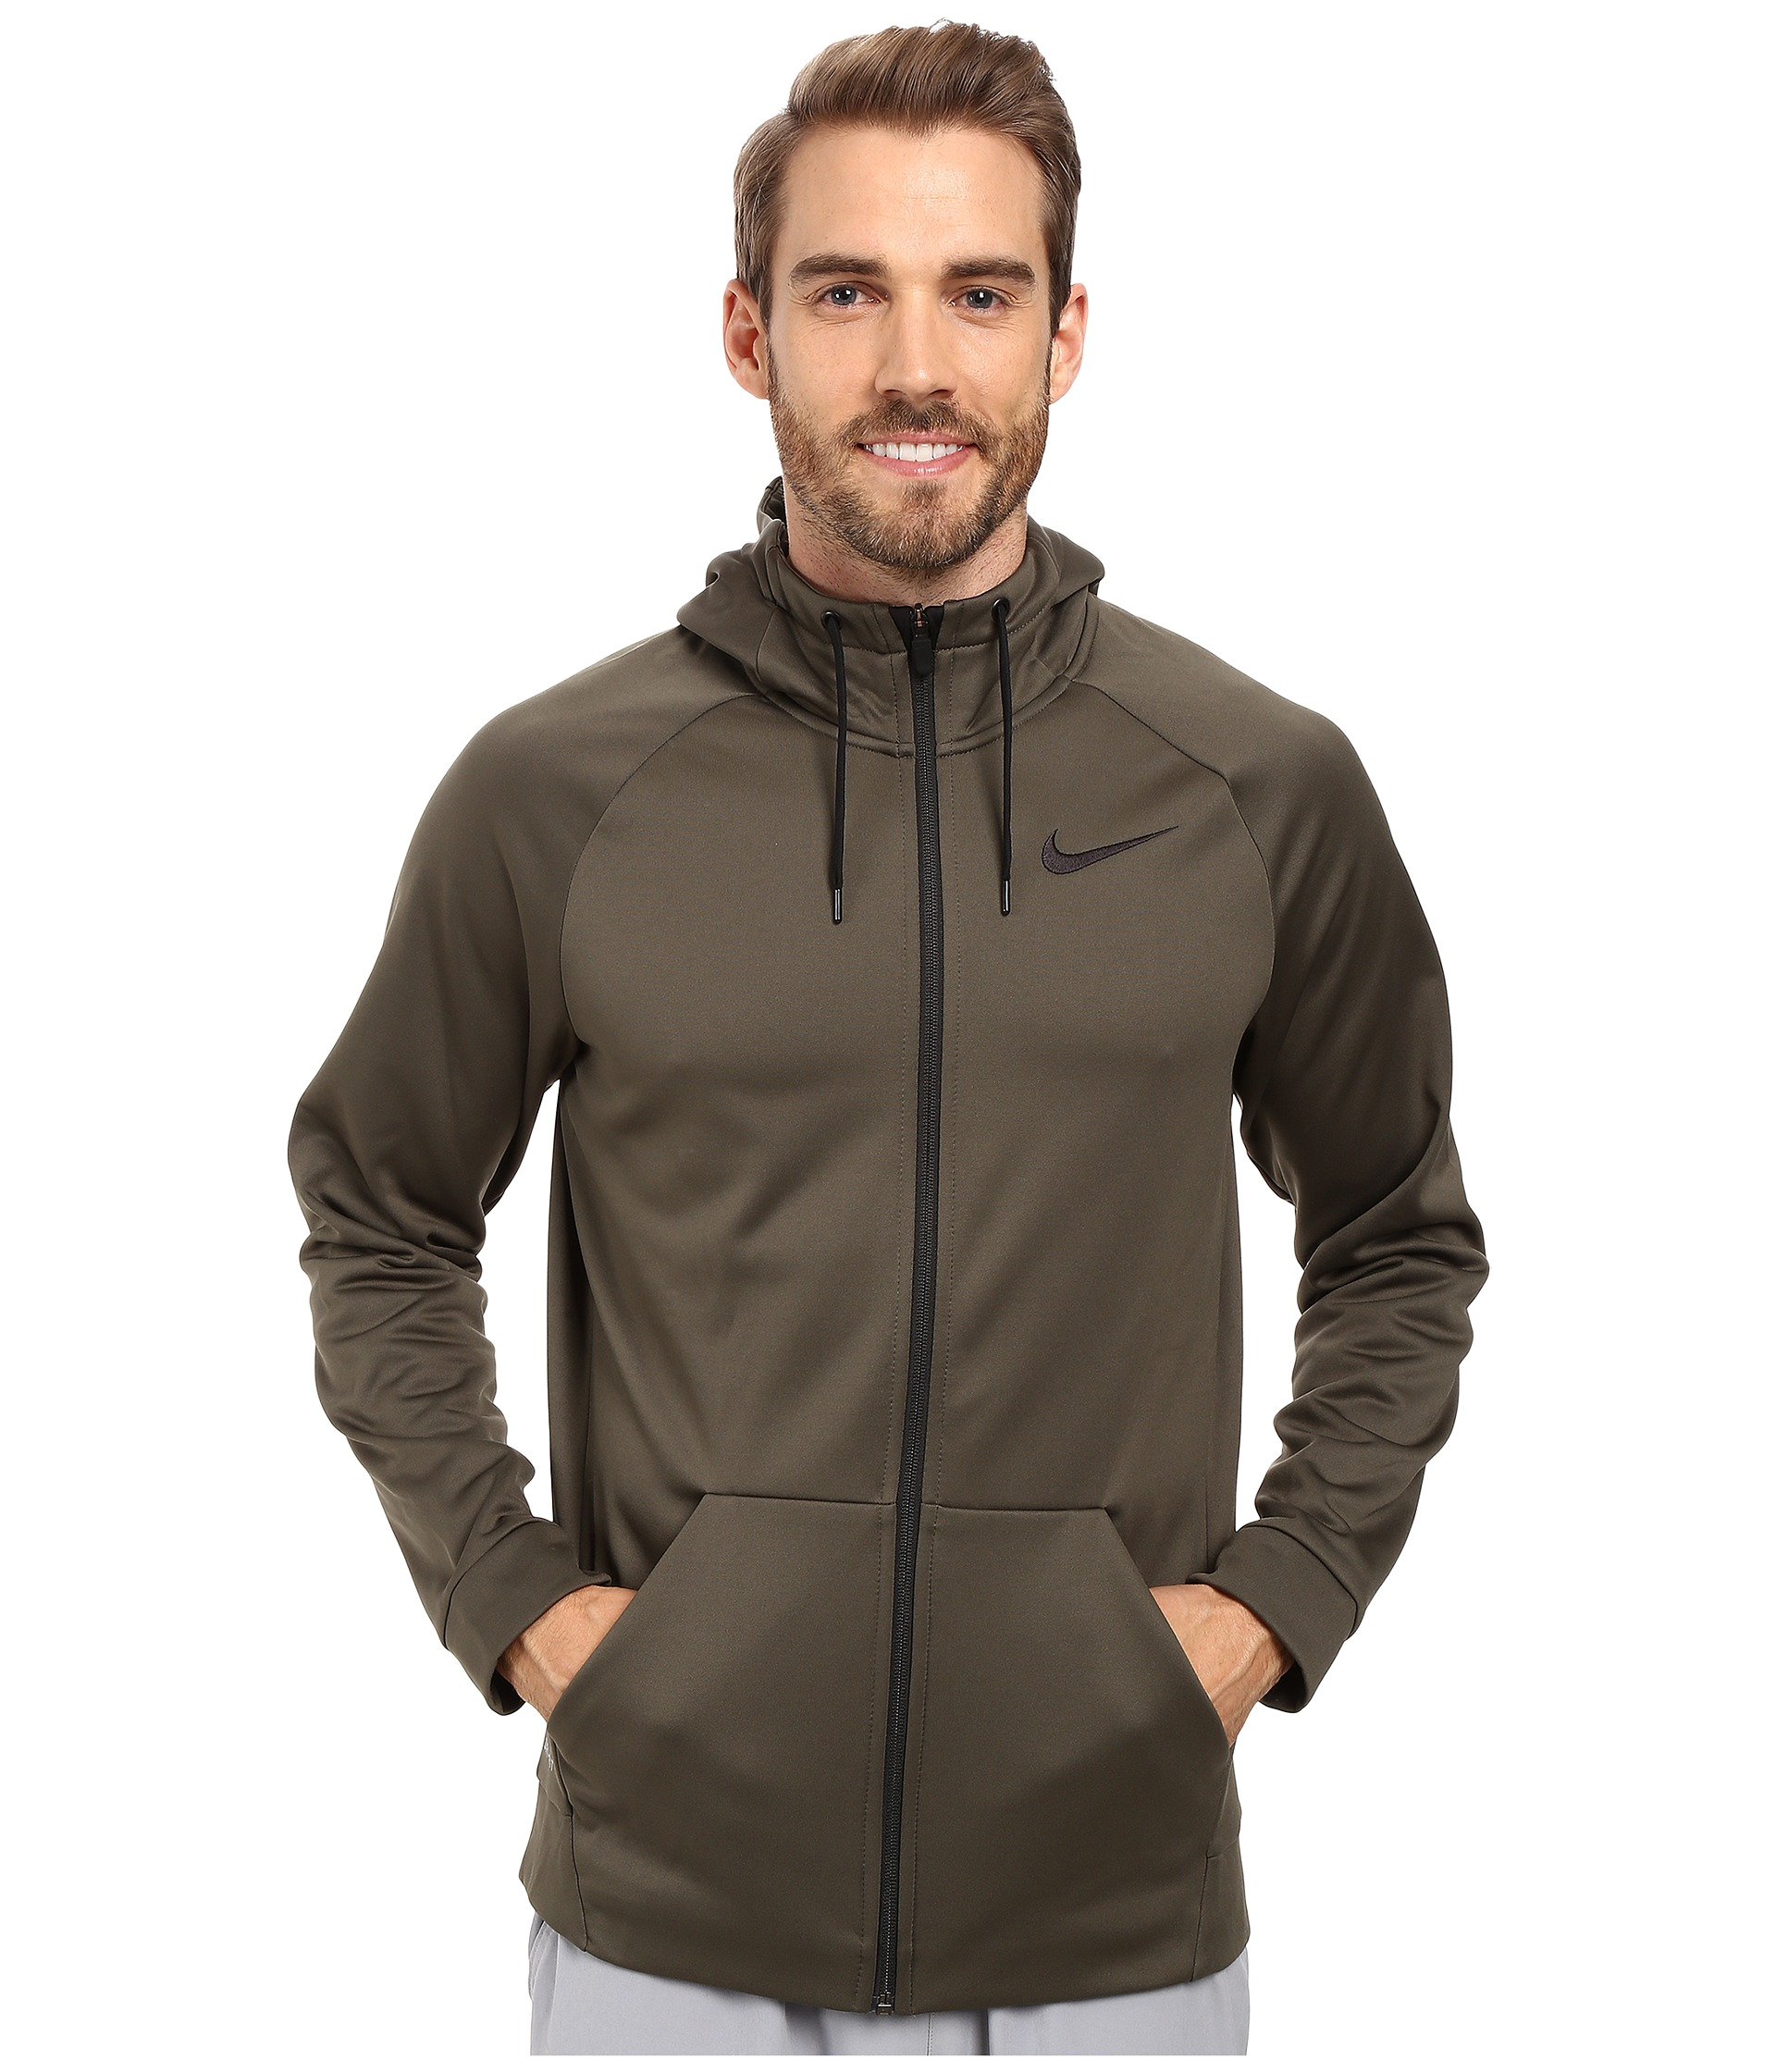 ecc5de915 Nike Therma Full-zip Training Hoodie in Natural for Men - Lyst